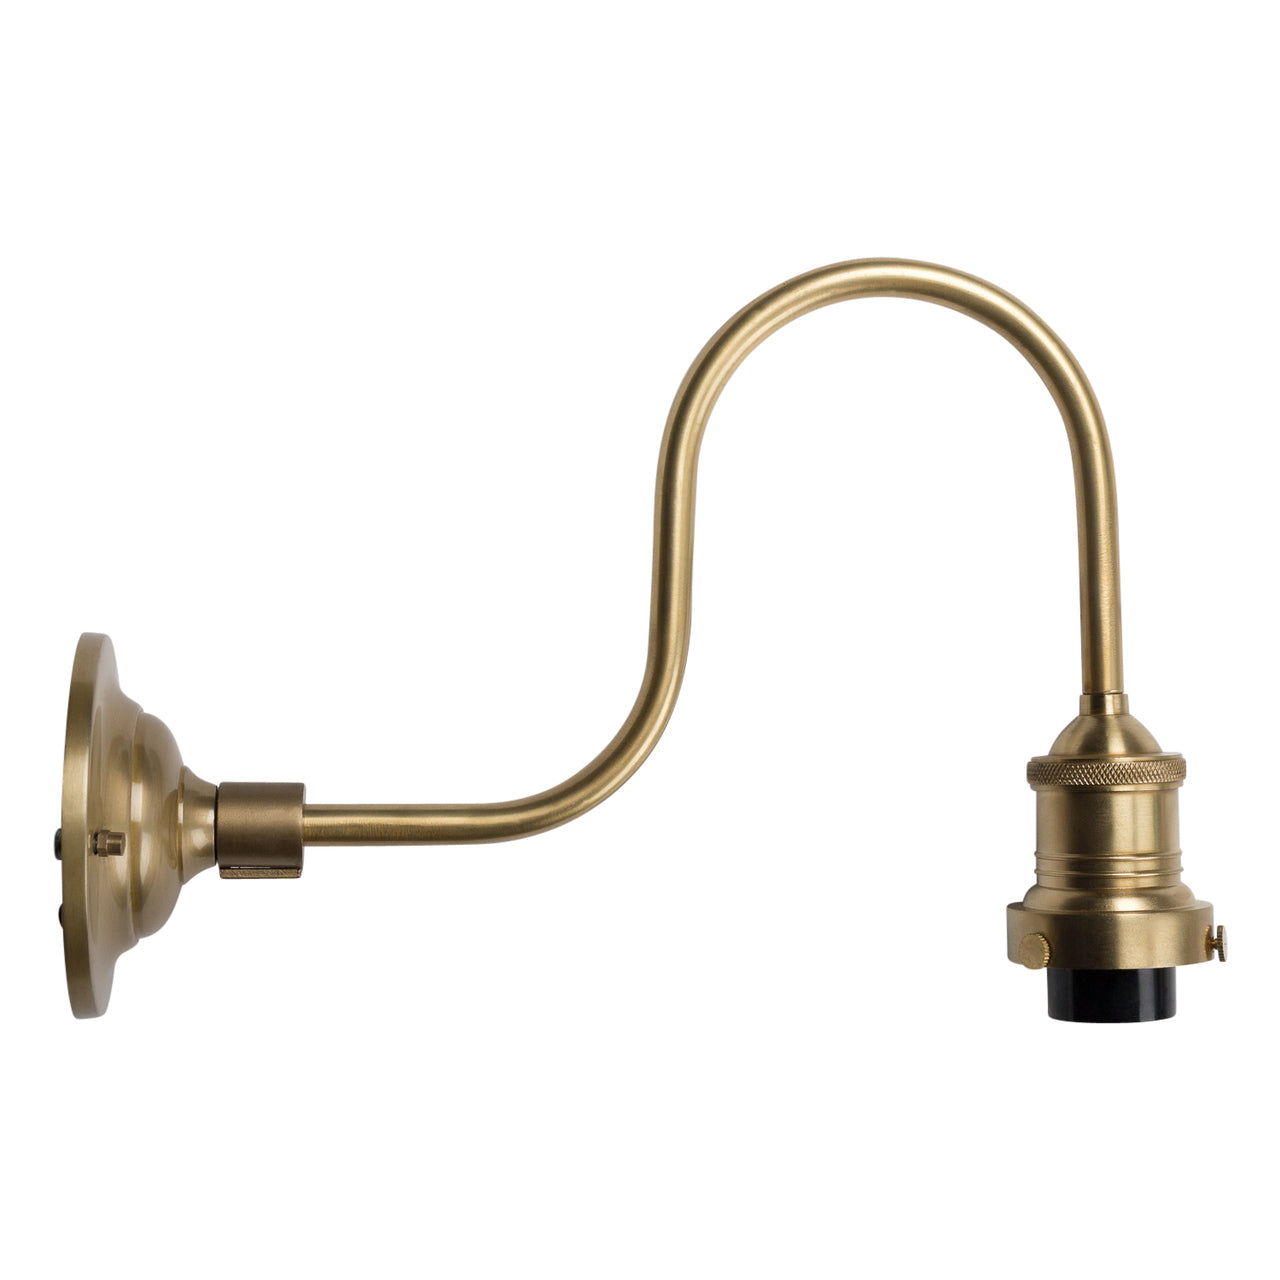 Mix and Match Wall Sconce - Brass